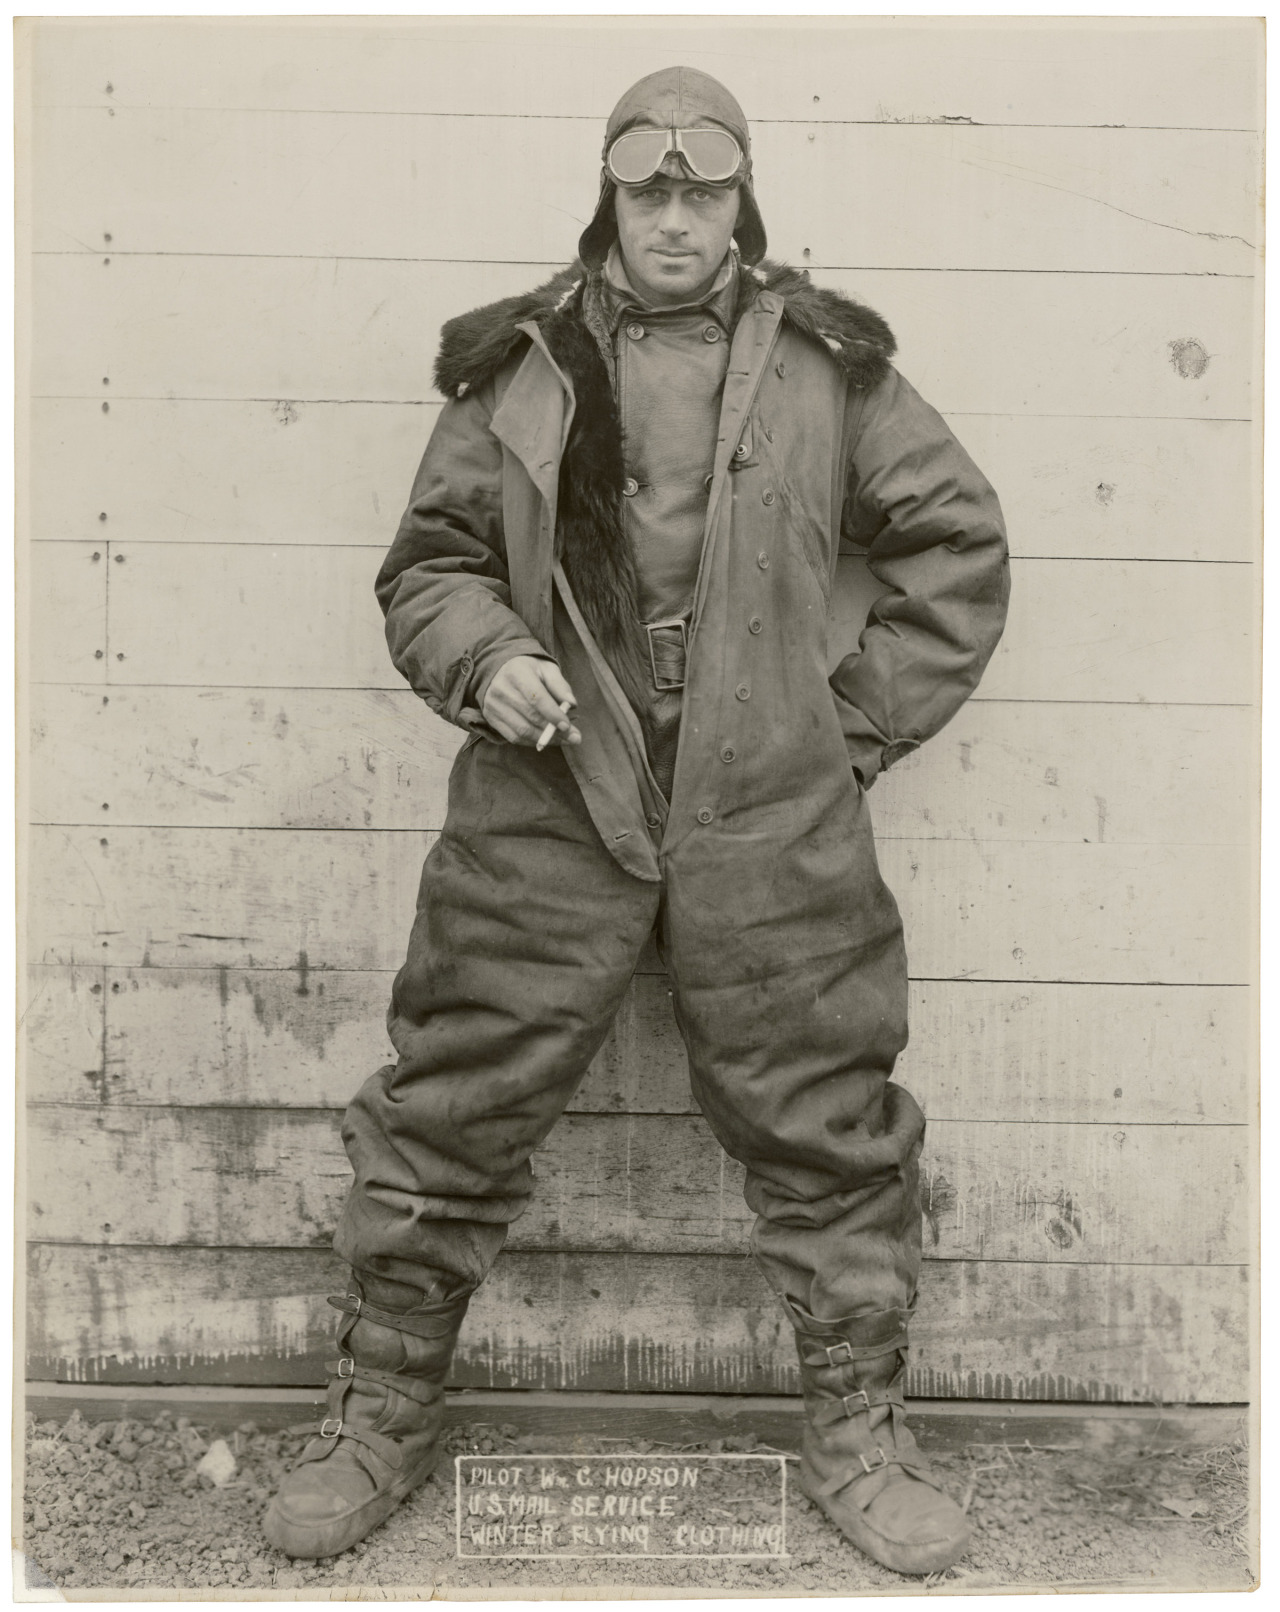 "todaysdocument:   Pilot William C. Hopson of the U.S. Mail Service in Winter Flying Clothing  Regularly scheduled airmail service first began in the United States on May 15, 1918.  ""Wild Bill"" Hopson remains one of the more colorful of the early airmail pilots.  A former cab driver who survived several close calls (once landing upside down in a cornfield), he perished when his plane crashed during a storm in 1928.  Check out his ""Pilot Story"" at the Smithsonian's National Postal Museum."